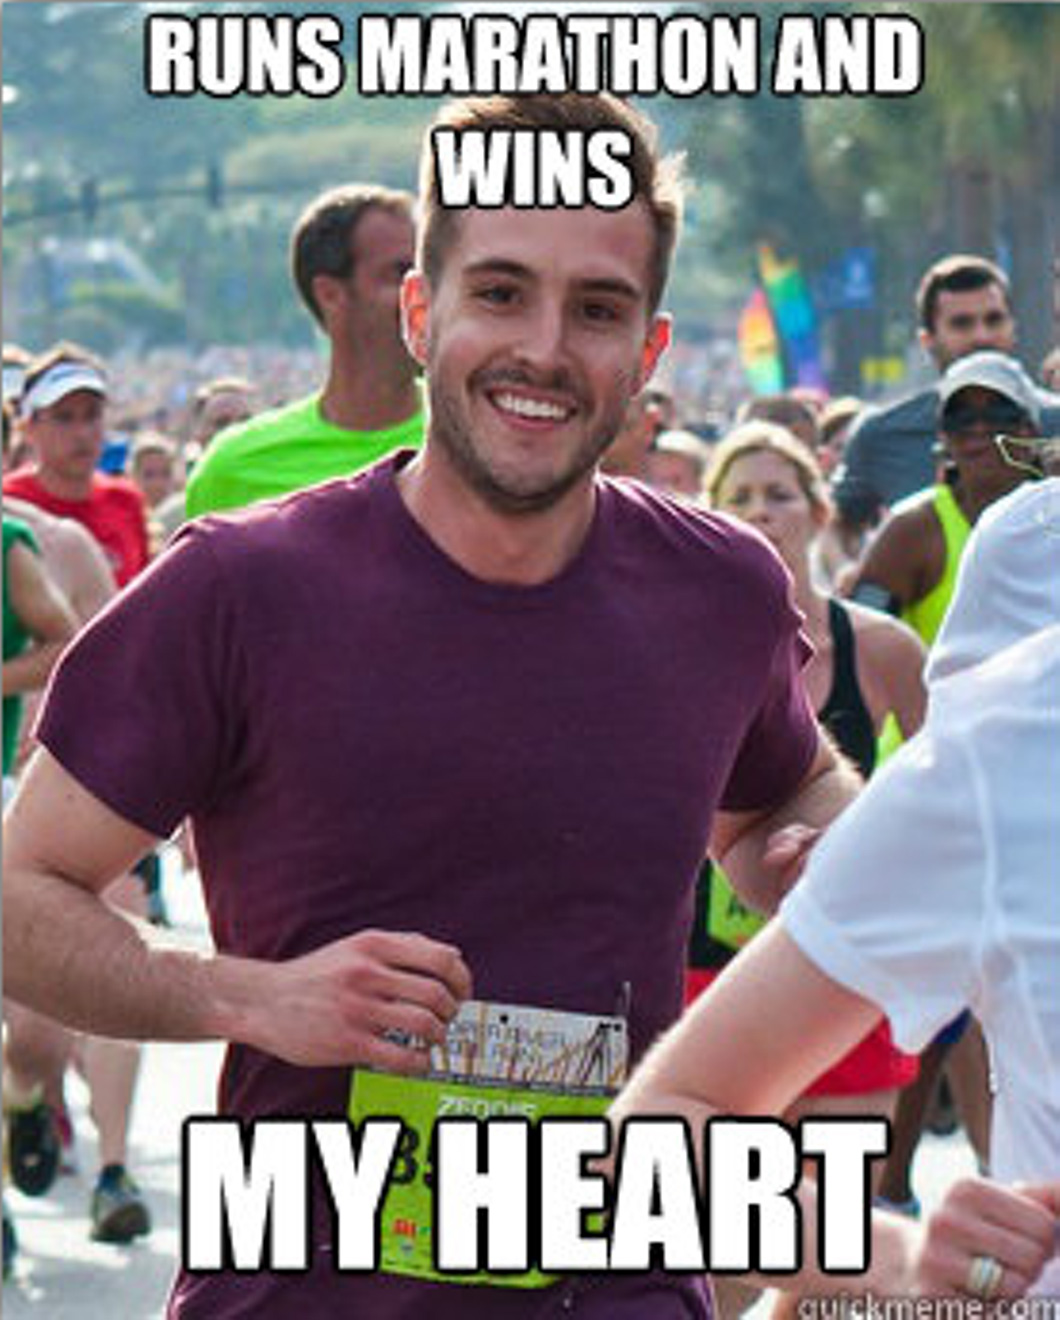 The infamous ridiculously photogenic runner